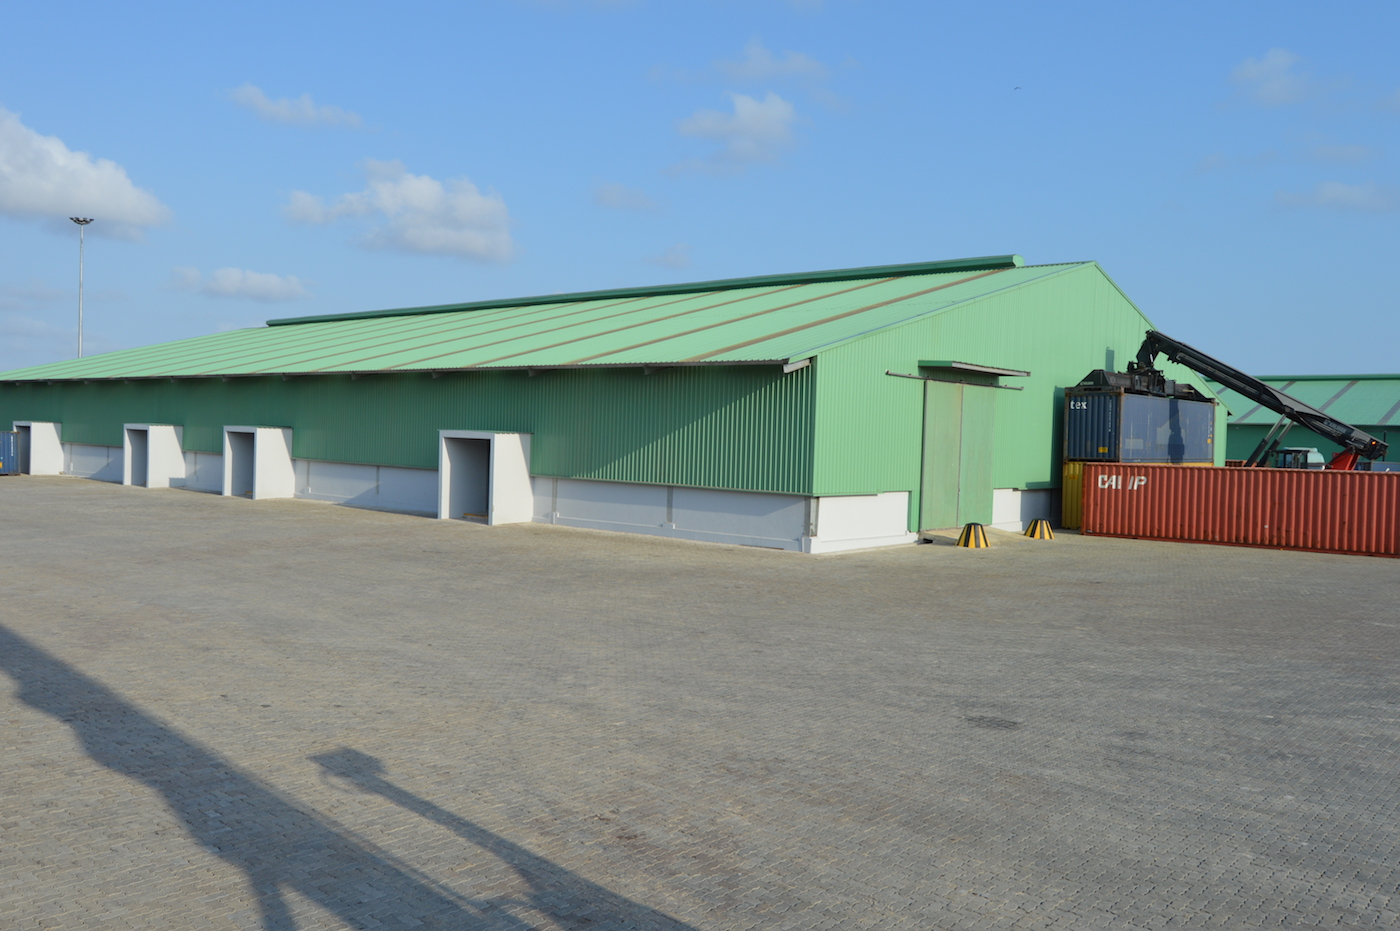 Cross-loading facility, 3278sq.meters multipurpose facility for offloading/stuffing containers below roof not depending from weather conditions